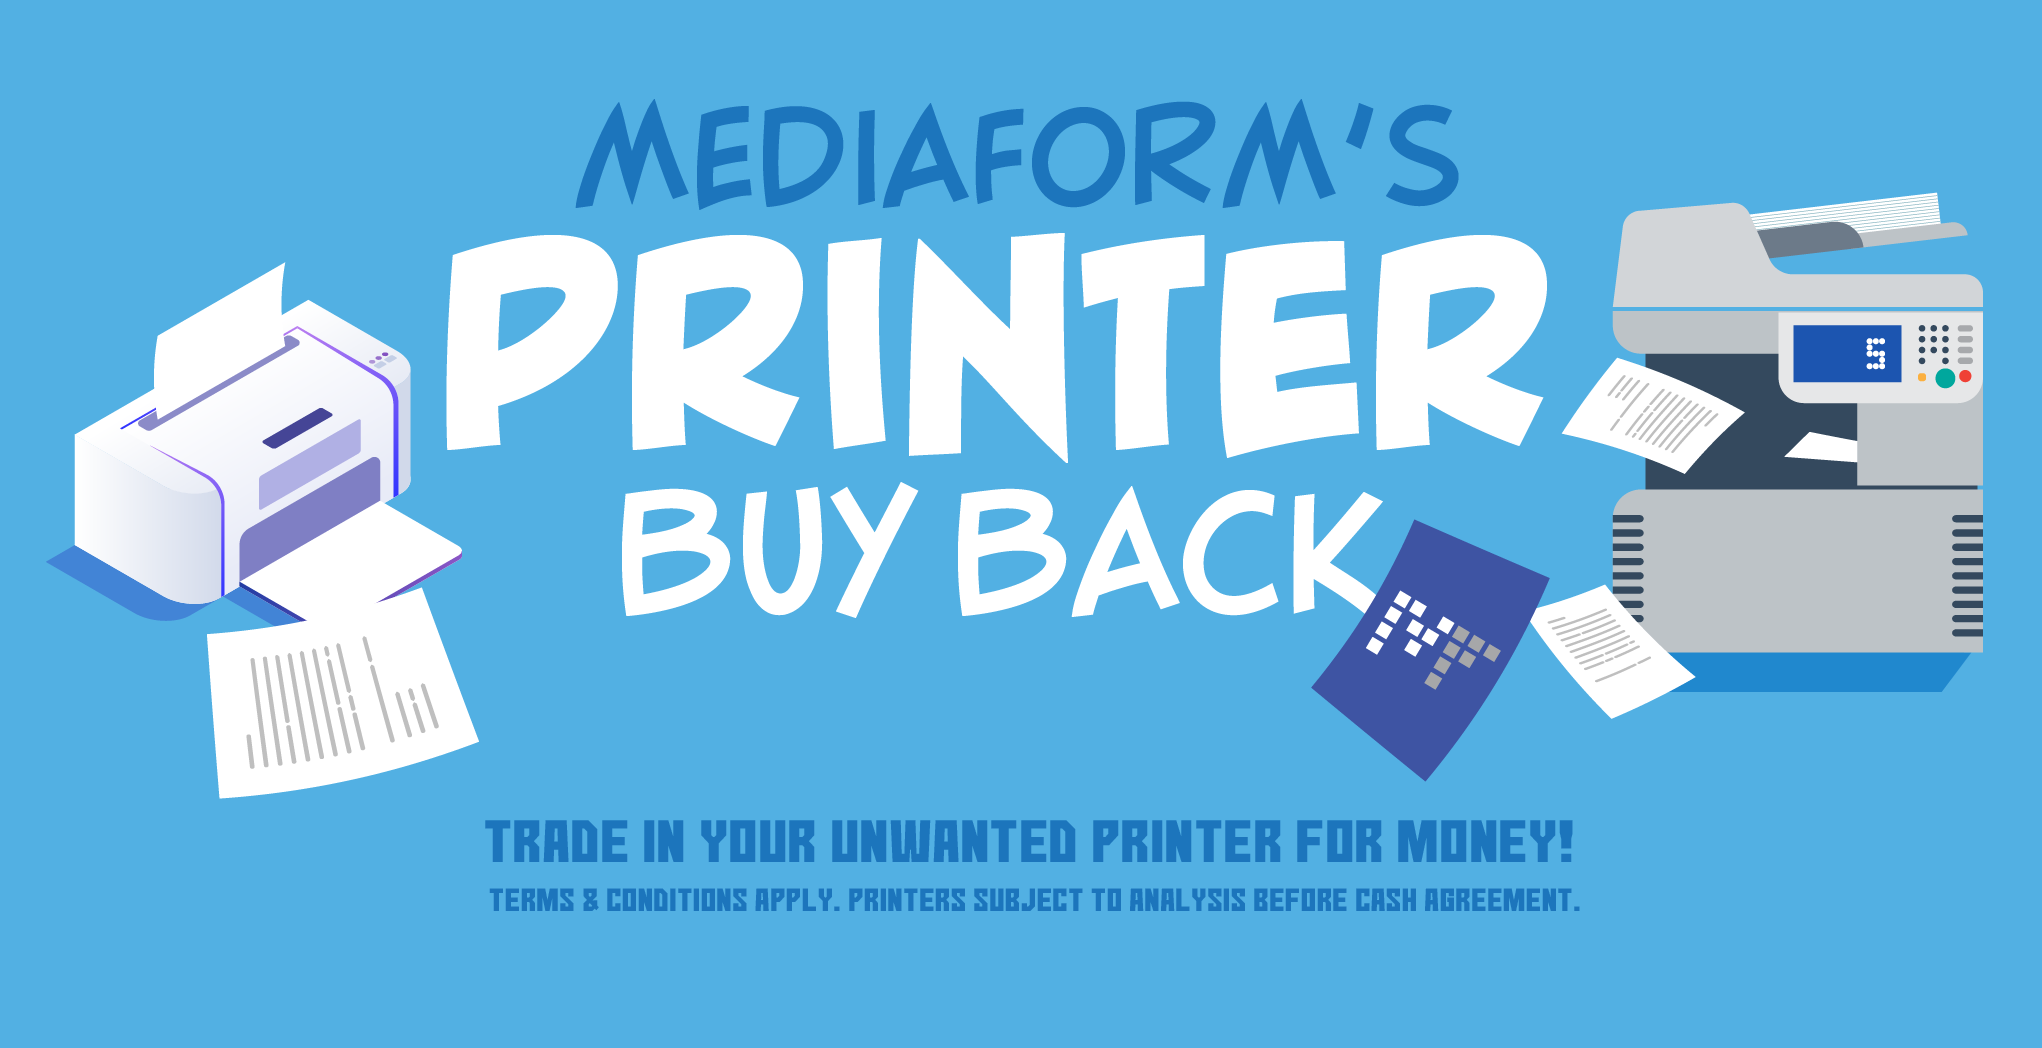 MediaForm's Printer Buy Back